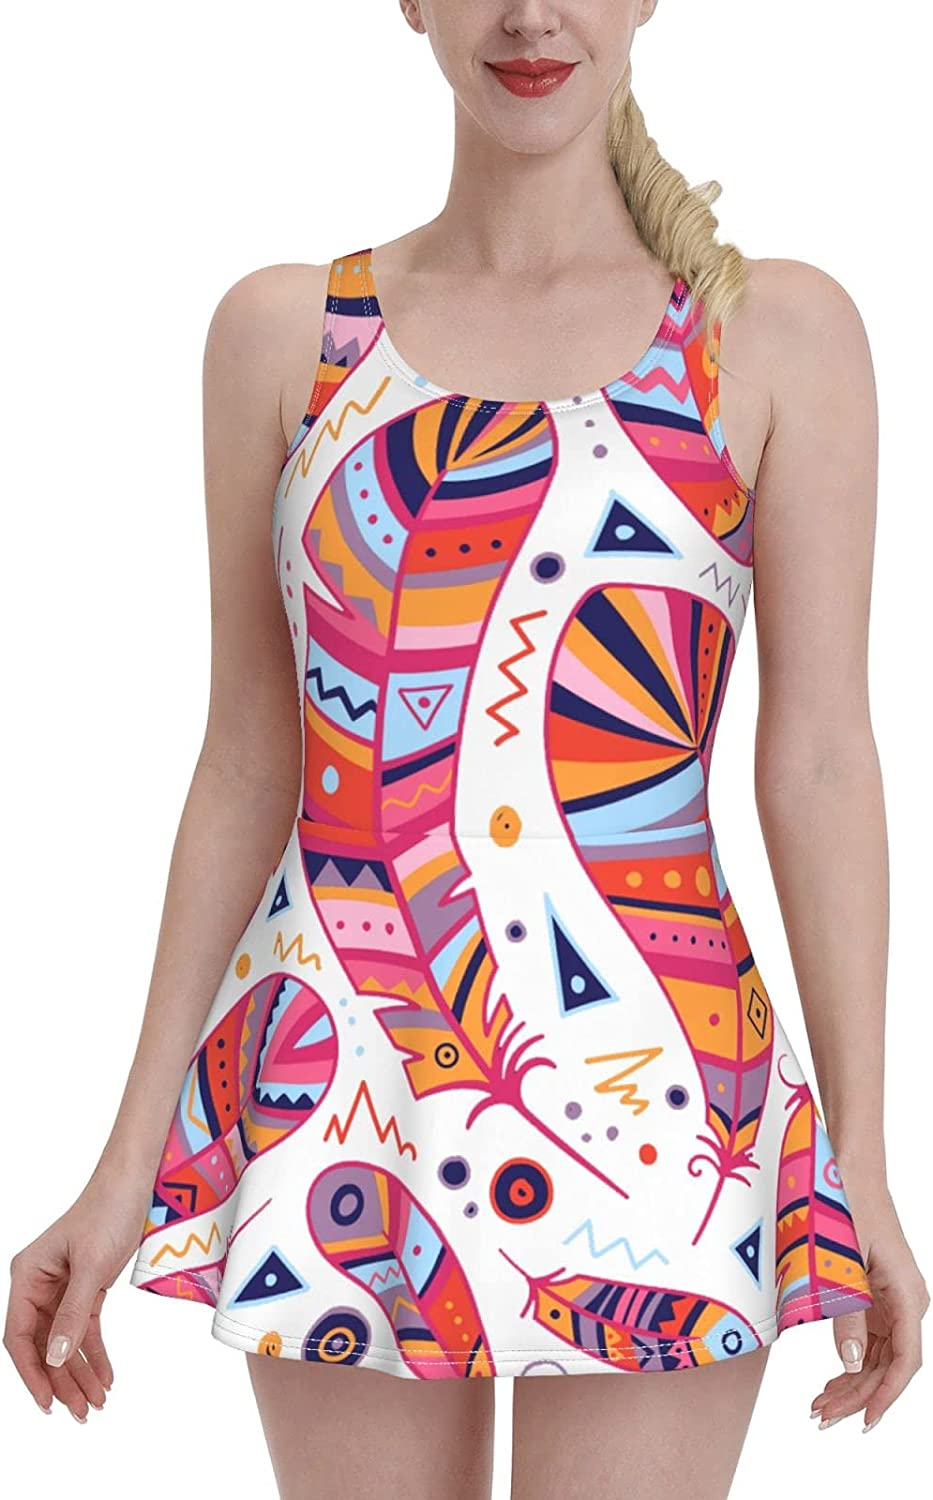 Bright Feathers Ladies Ruffled New life Large-scale sale Adjustabl with Swimsuit One-Piece